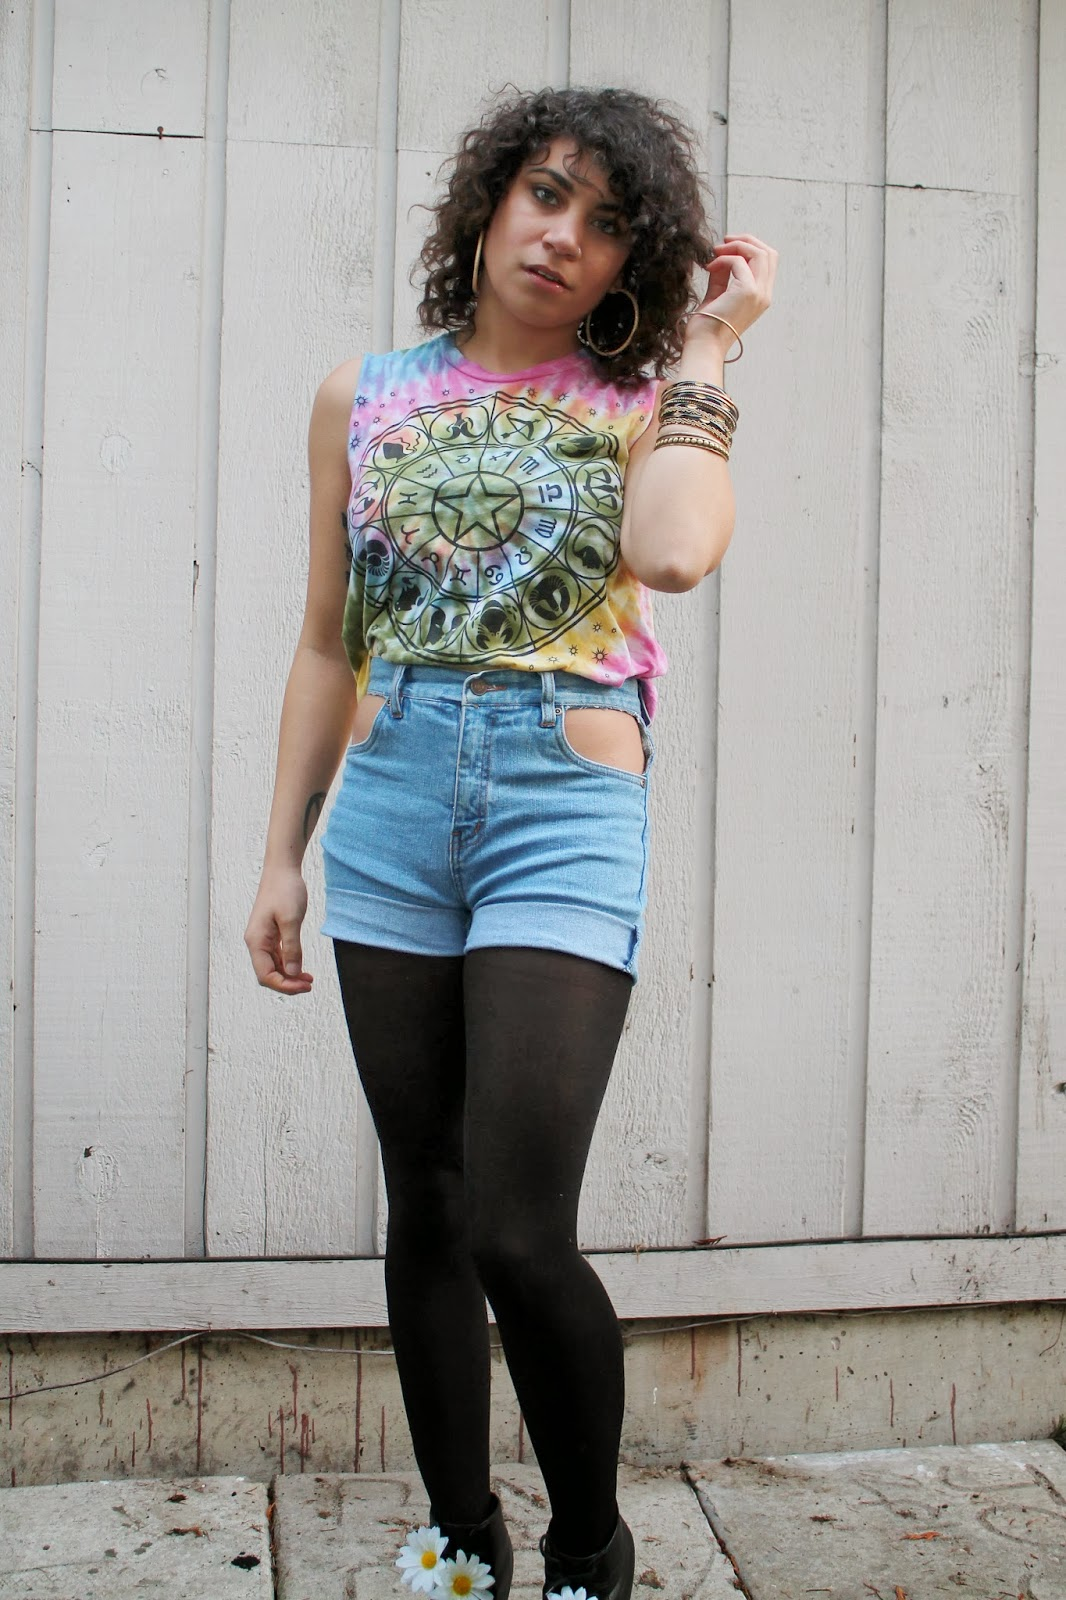 tie dye, astrology, urban outfitters, curly hair, high waist denim shorts